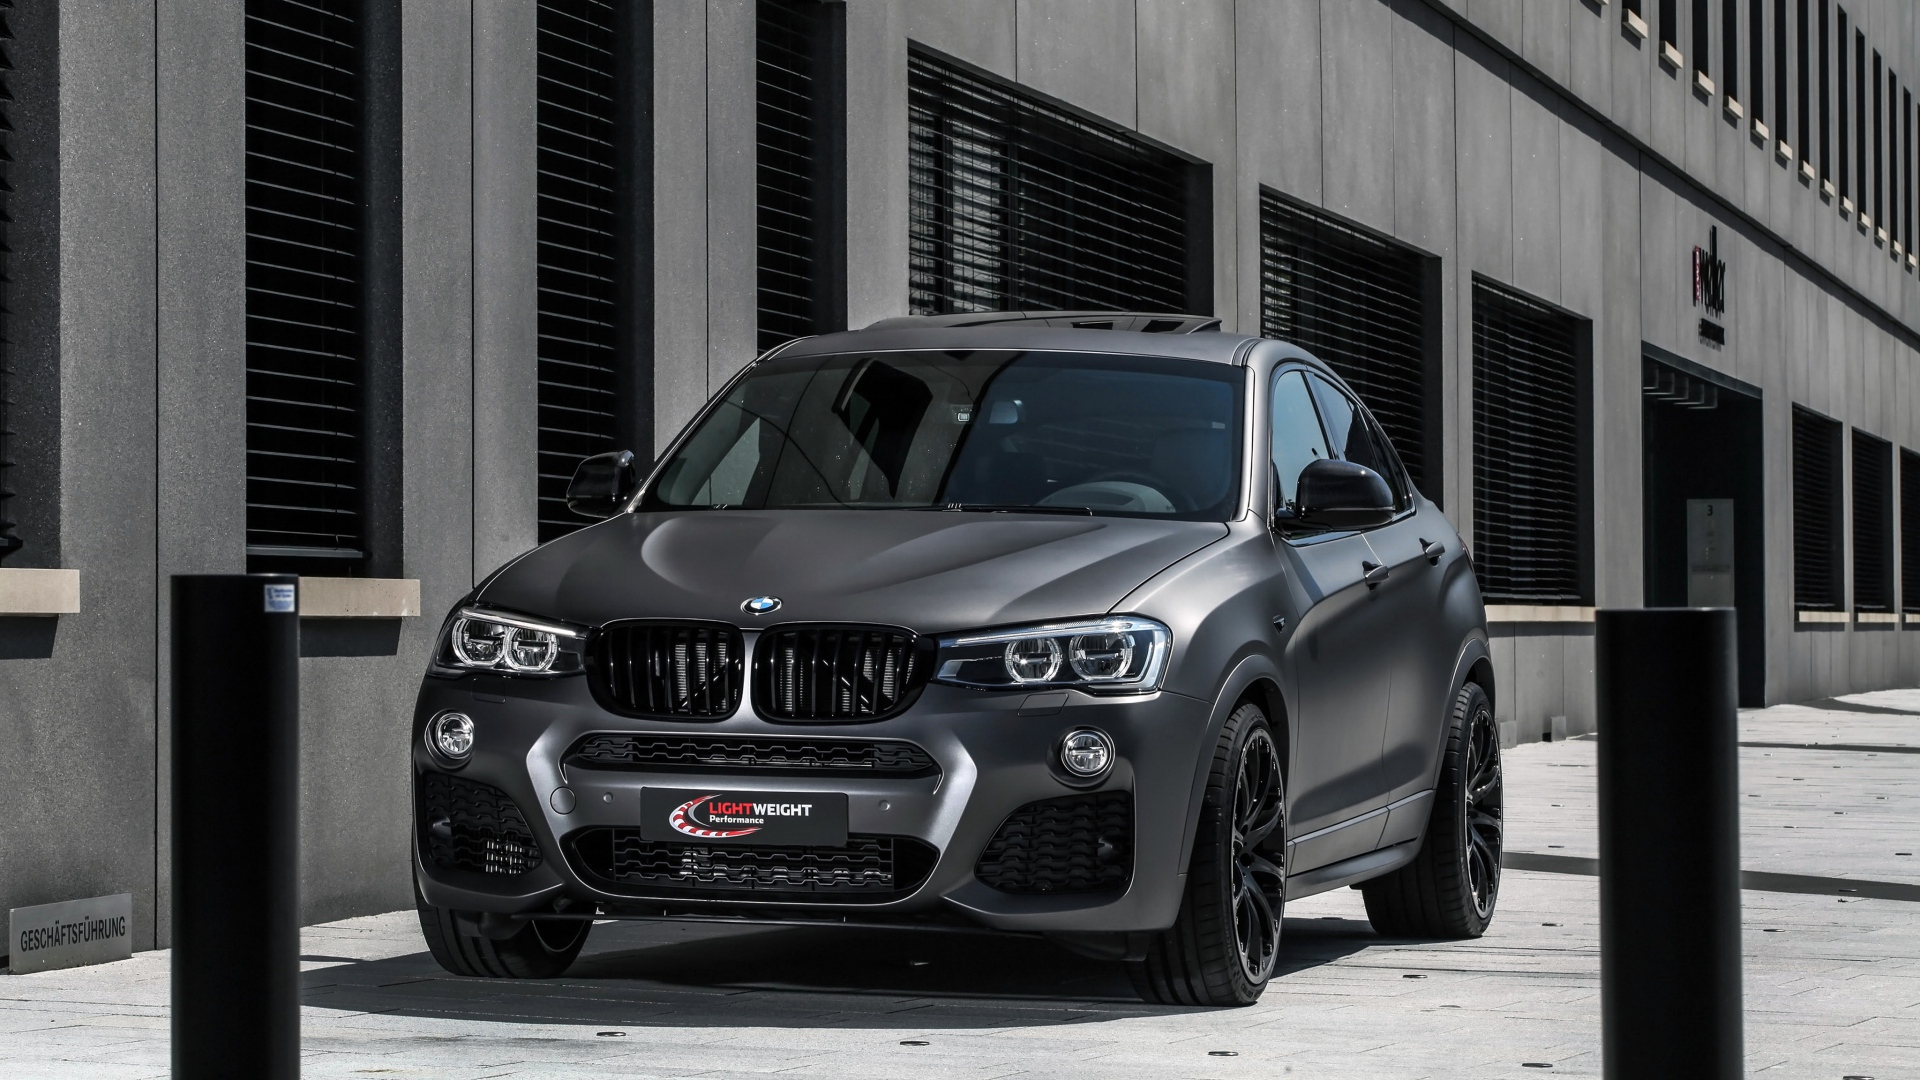 1920x1080 - BMW X4 Wallpapers 26